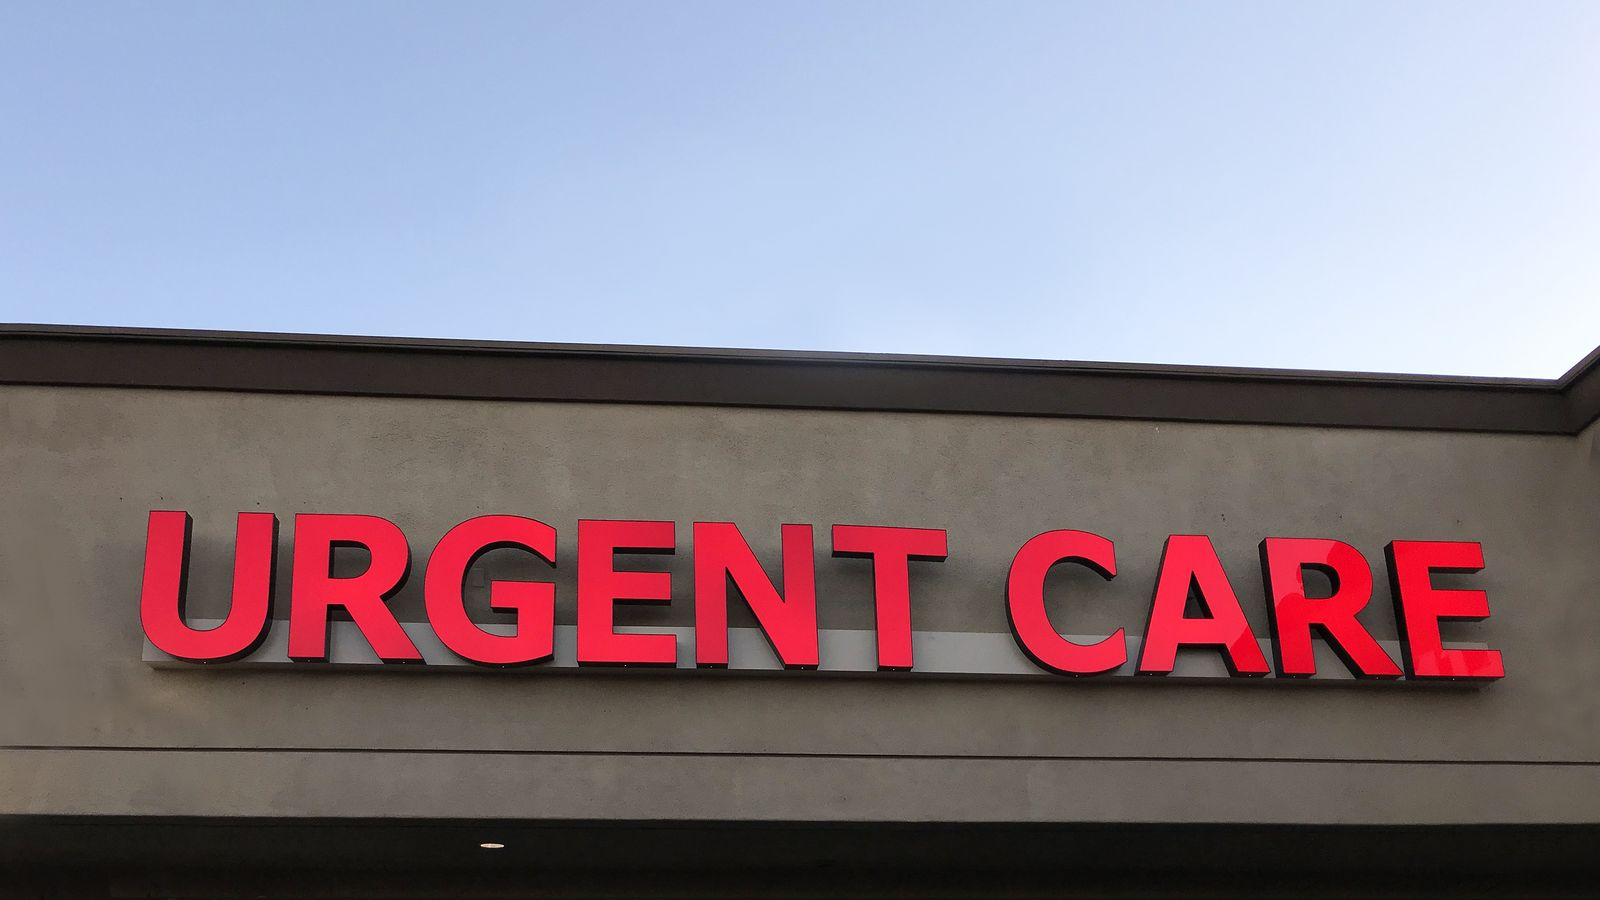 Urgent Care channel letters